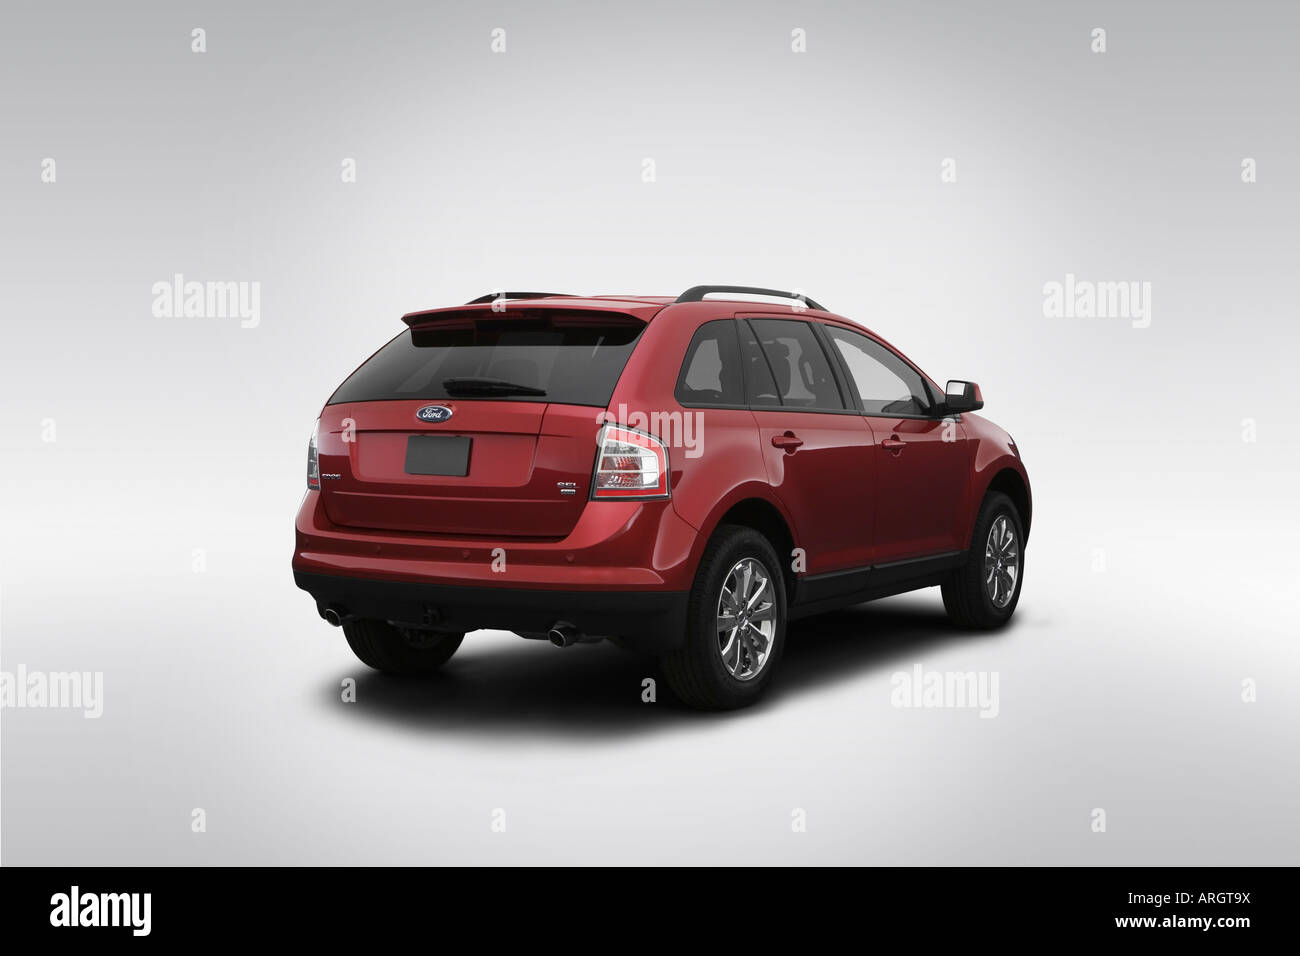 2007 ford edge sel plus in red rear angle view